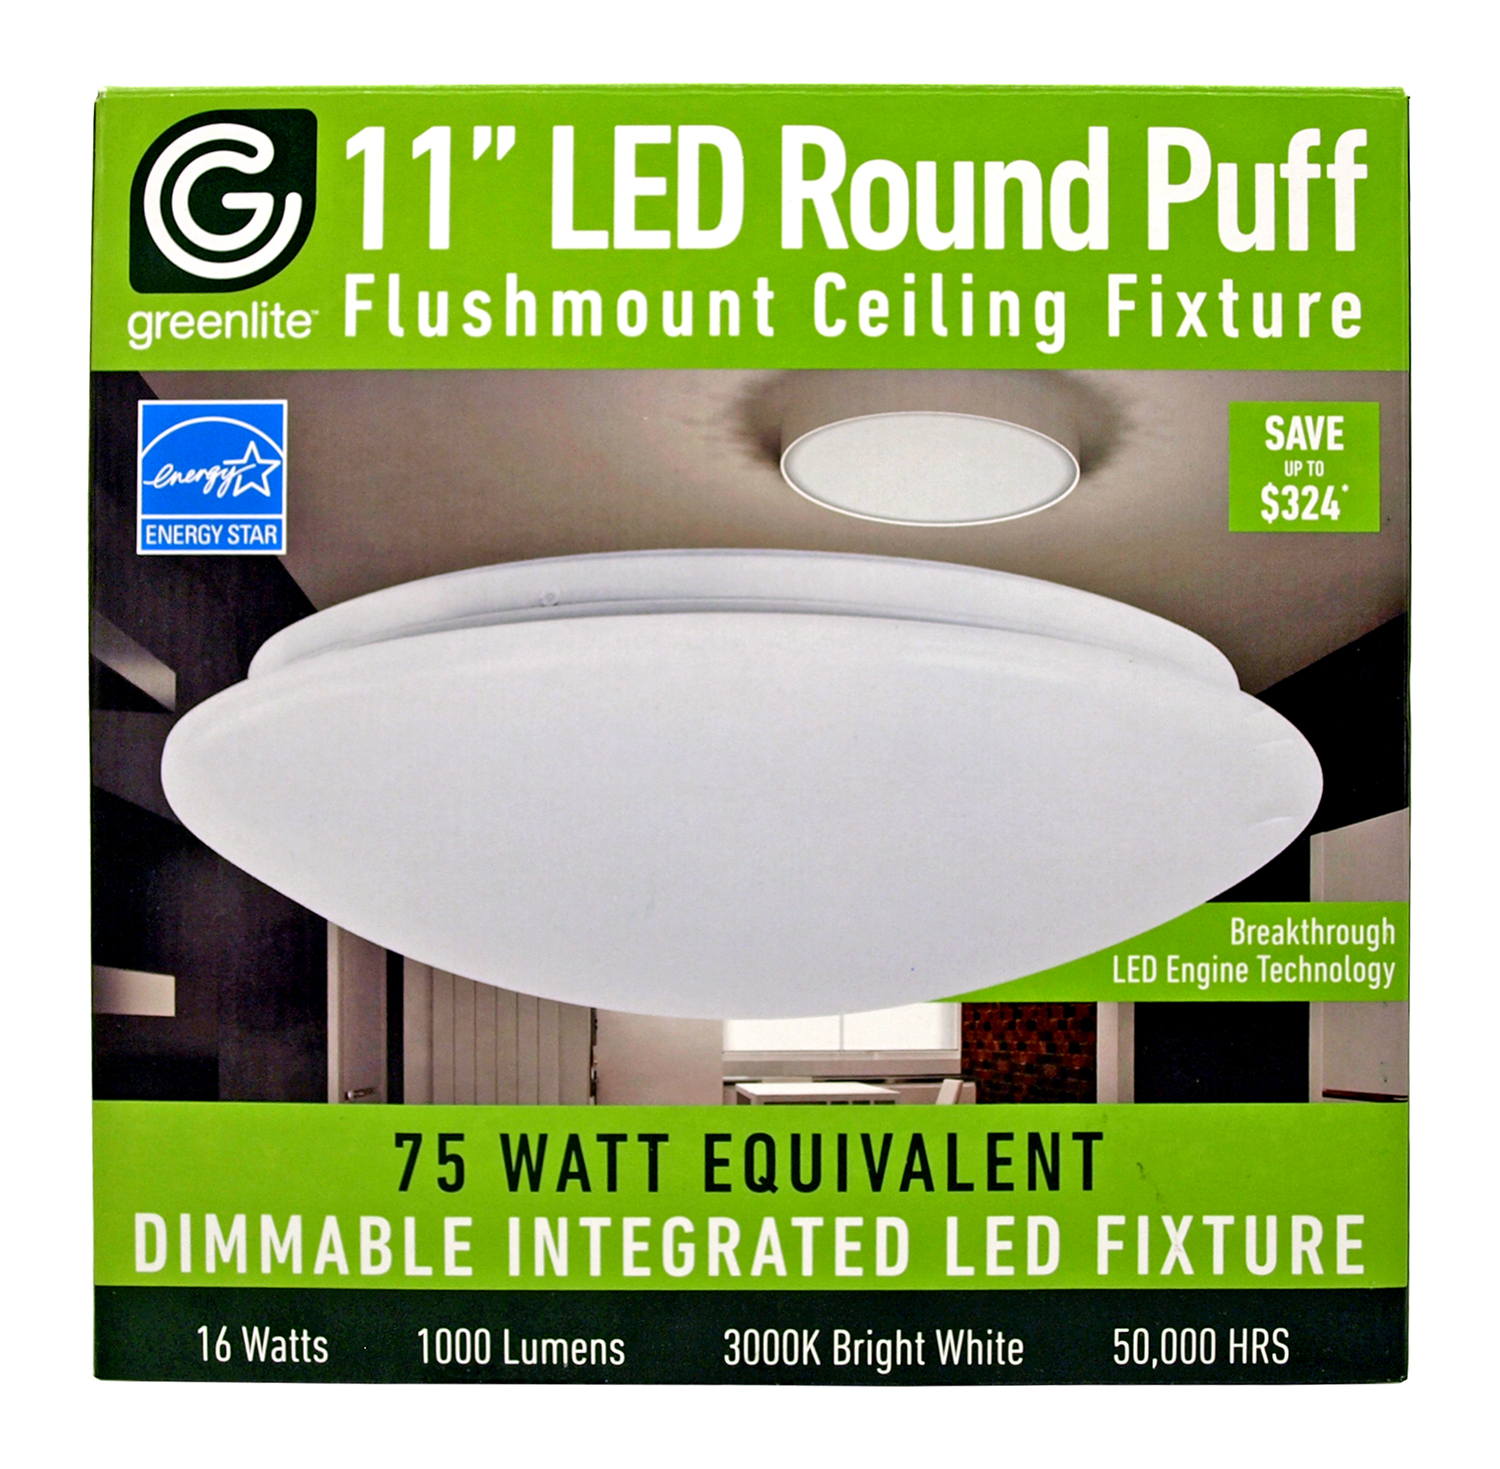 11 in LED Round Puff Flush mount Ceiling Fixture